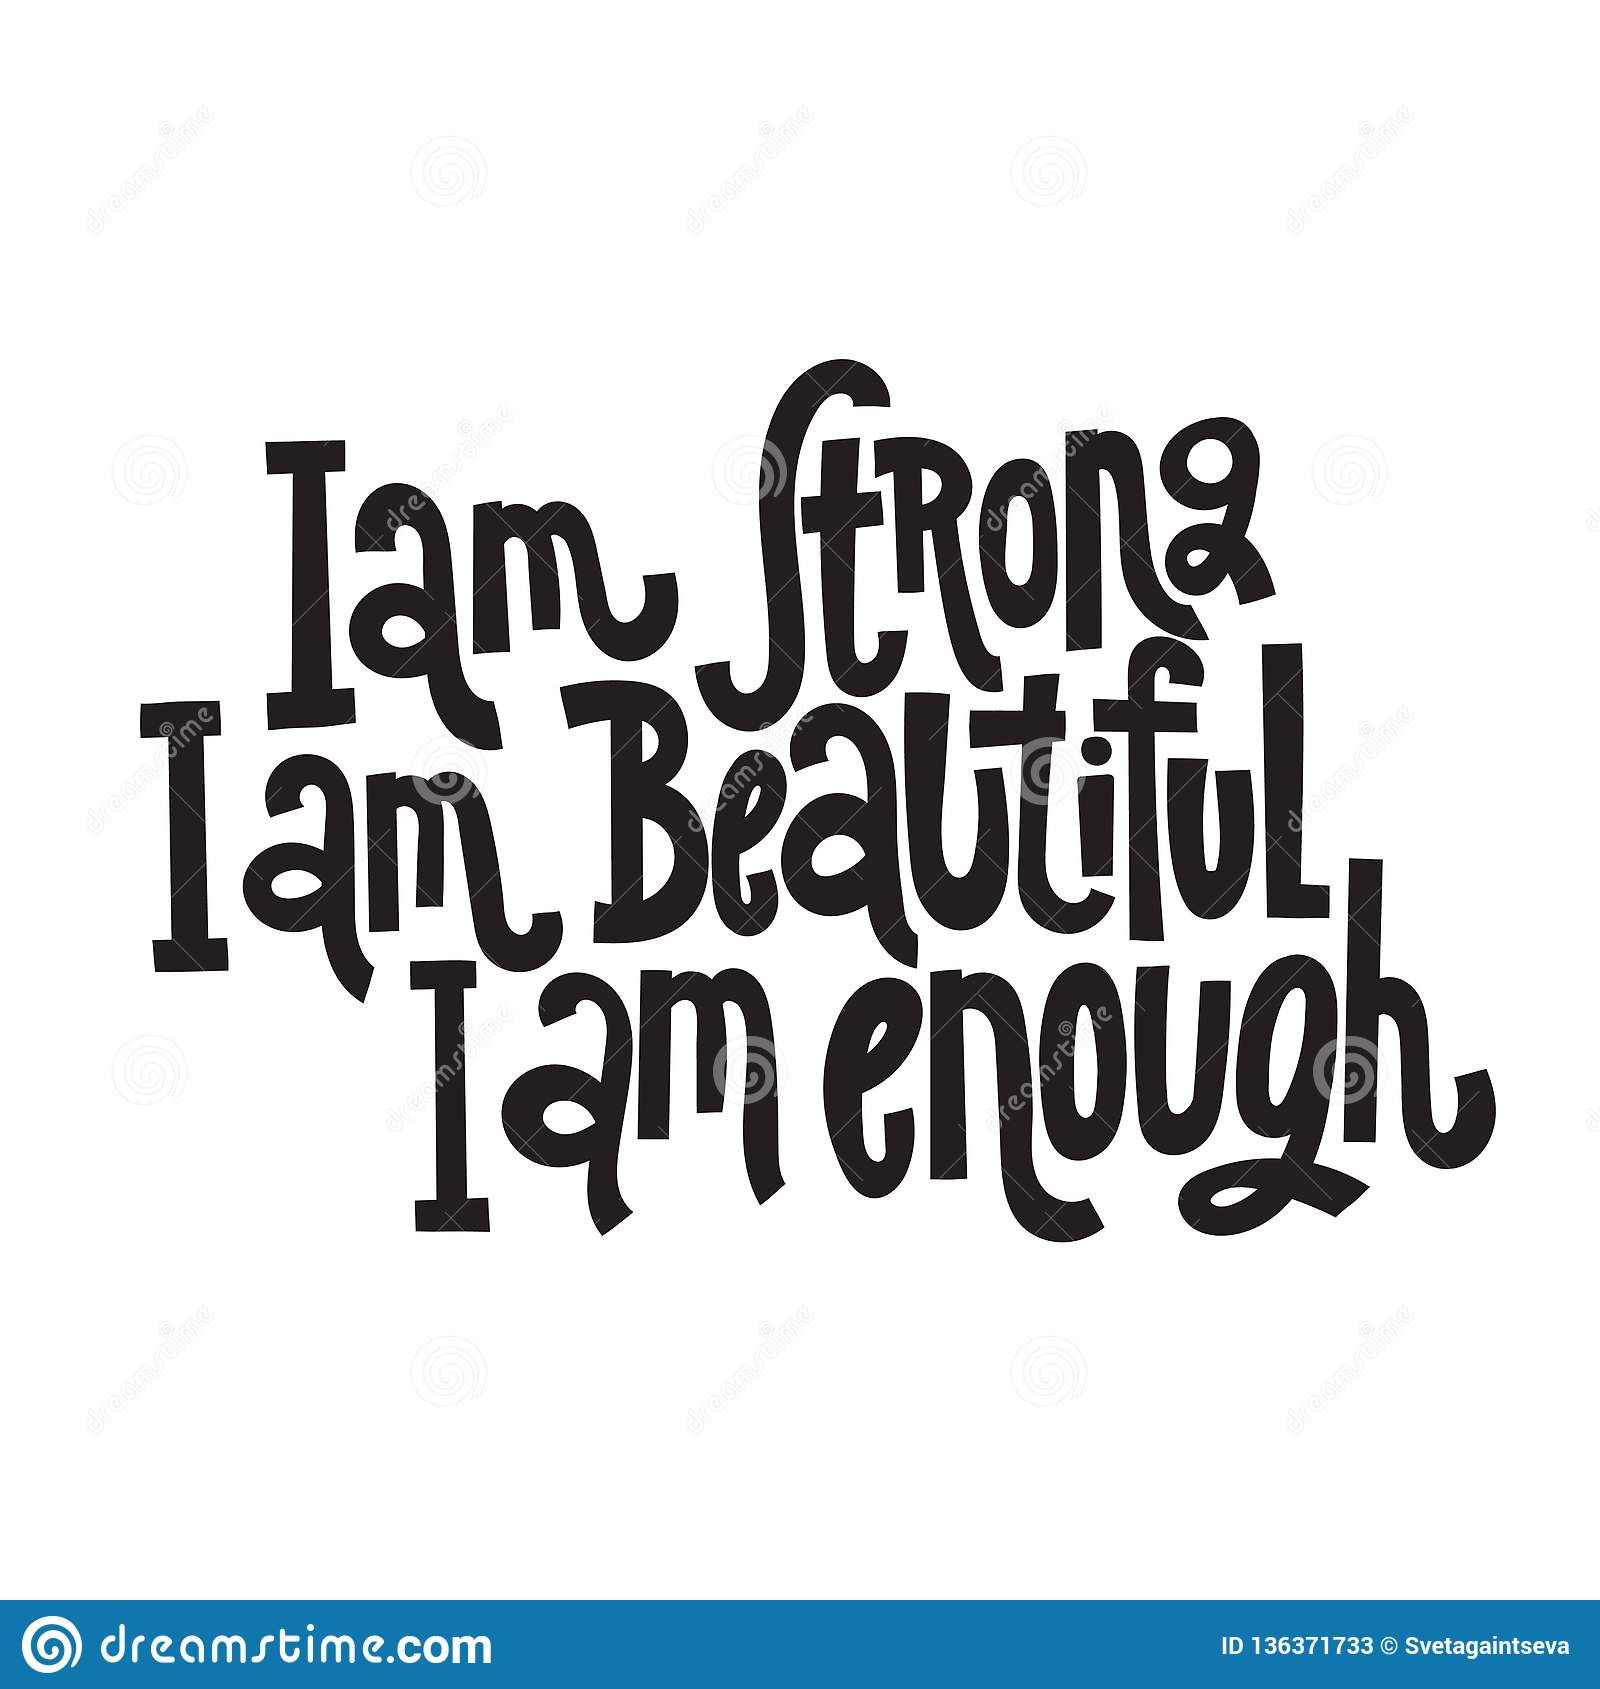 Image of: Images Am Strong Am Beautiful Am Enough Hand Drawn Vector Lettering Body Positive Mental Health Slogan Stylized Typography Social Media Poster Card Dreamstimecom Body Positive Quotes Stock Vector Illustration Of Isolated 136371733